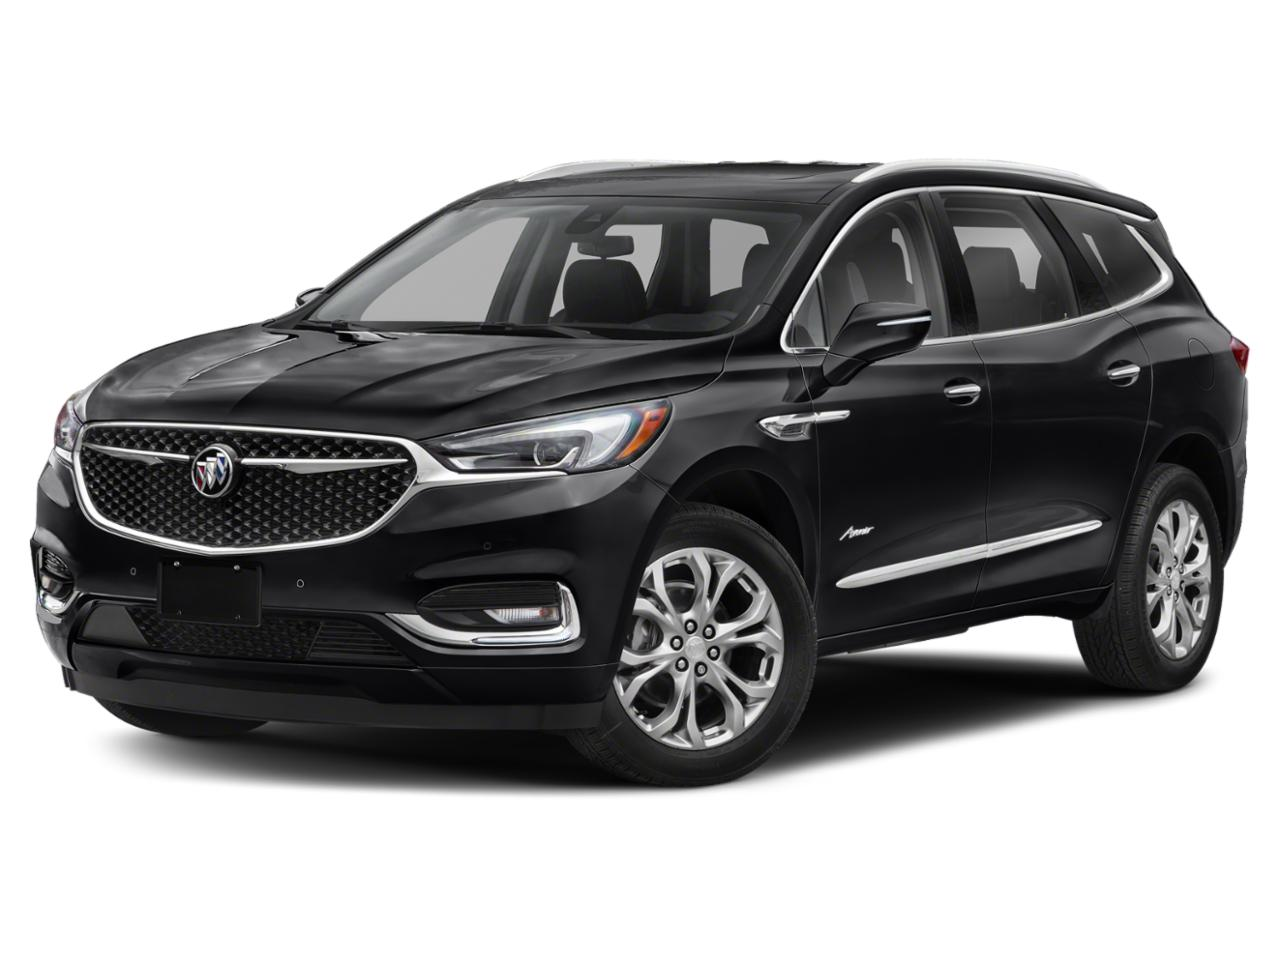 2021 Buick Enclave Vehicle Photo in Plainfield, IL 60586